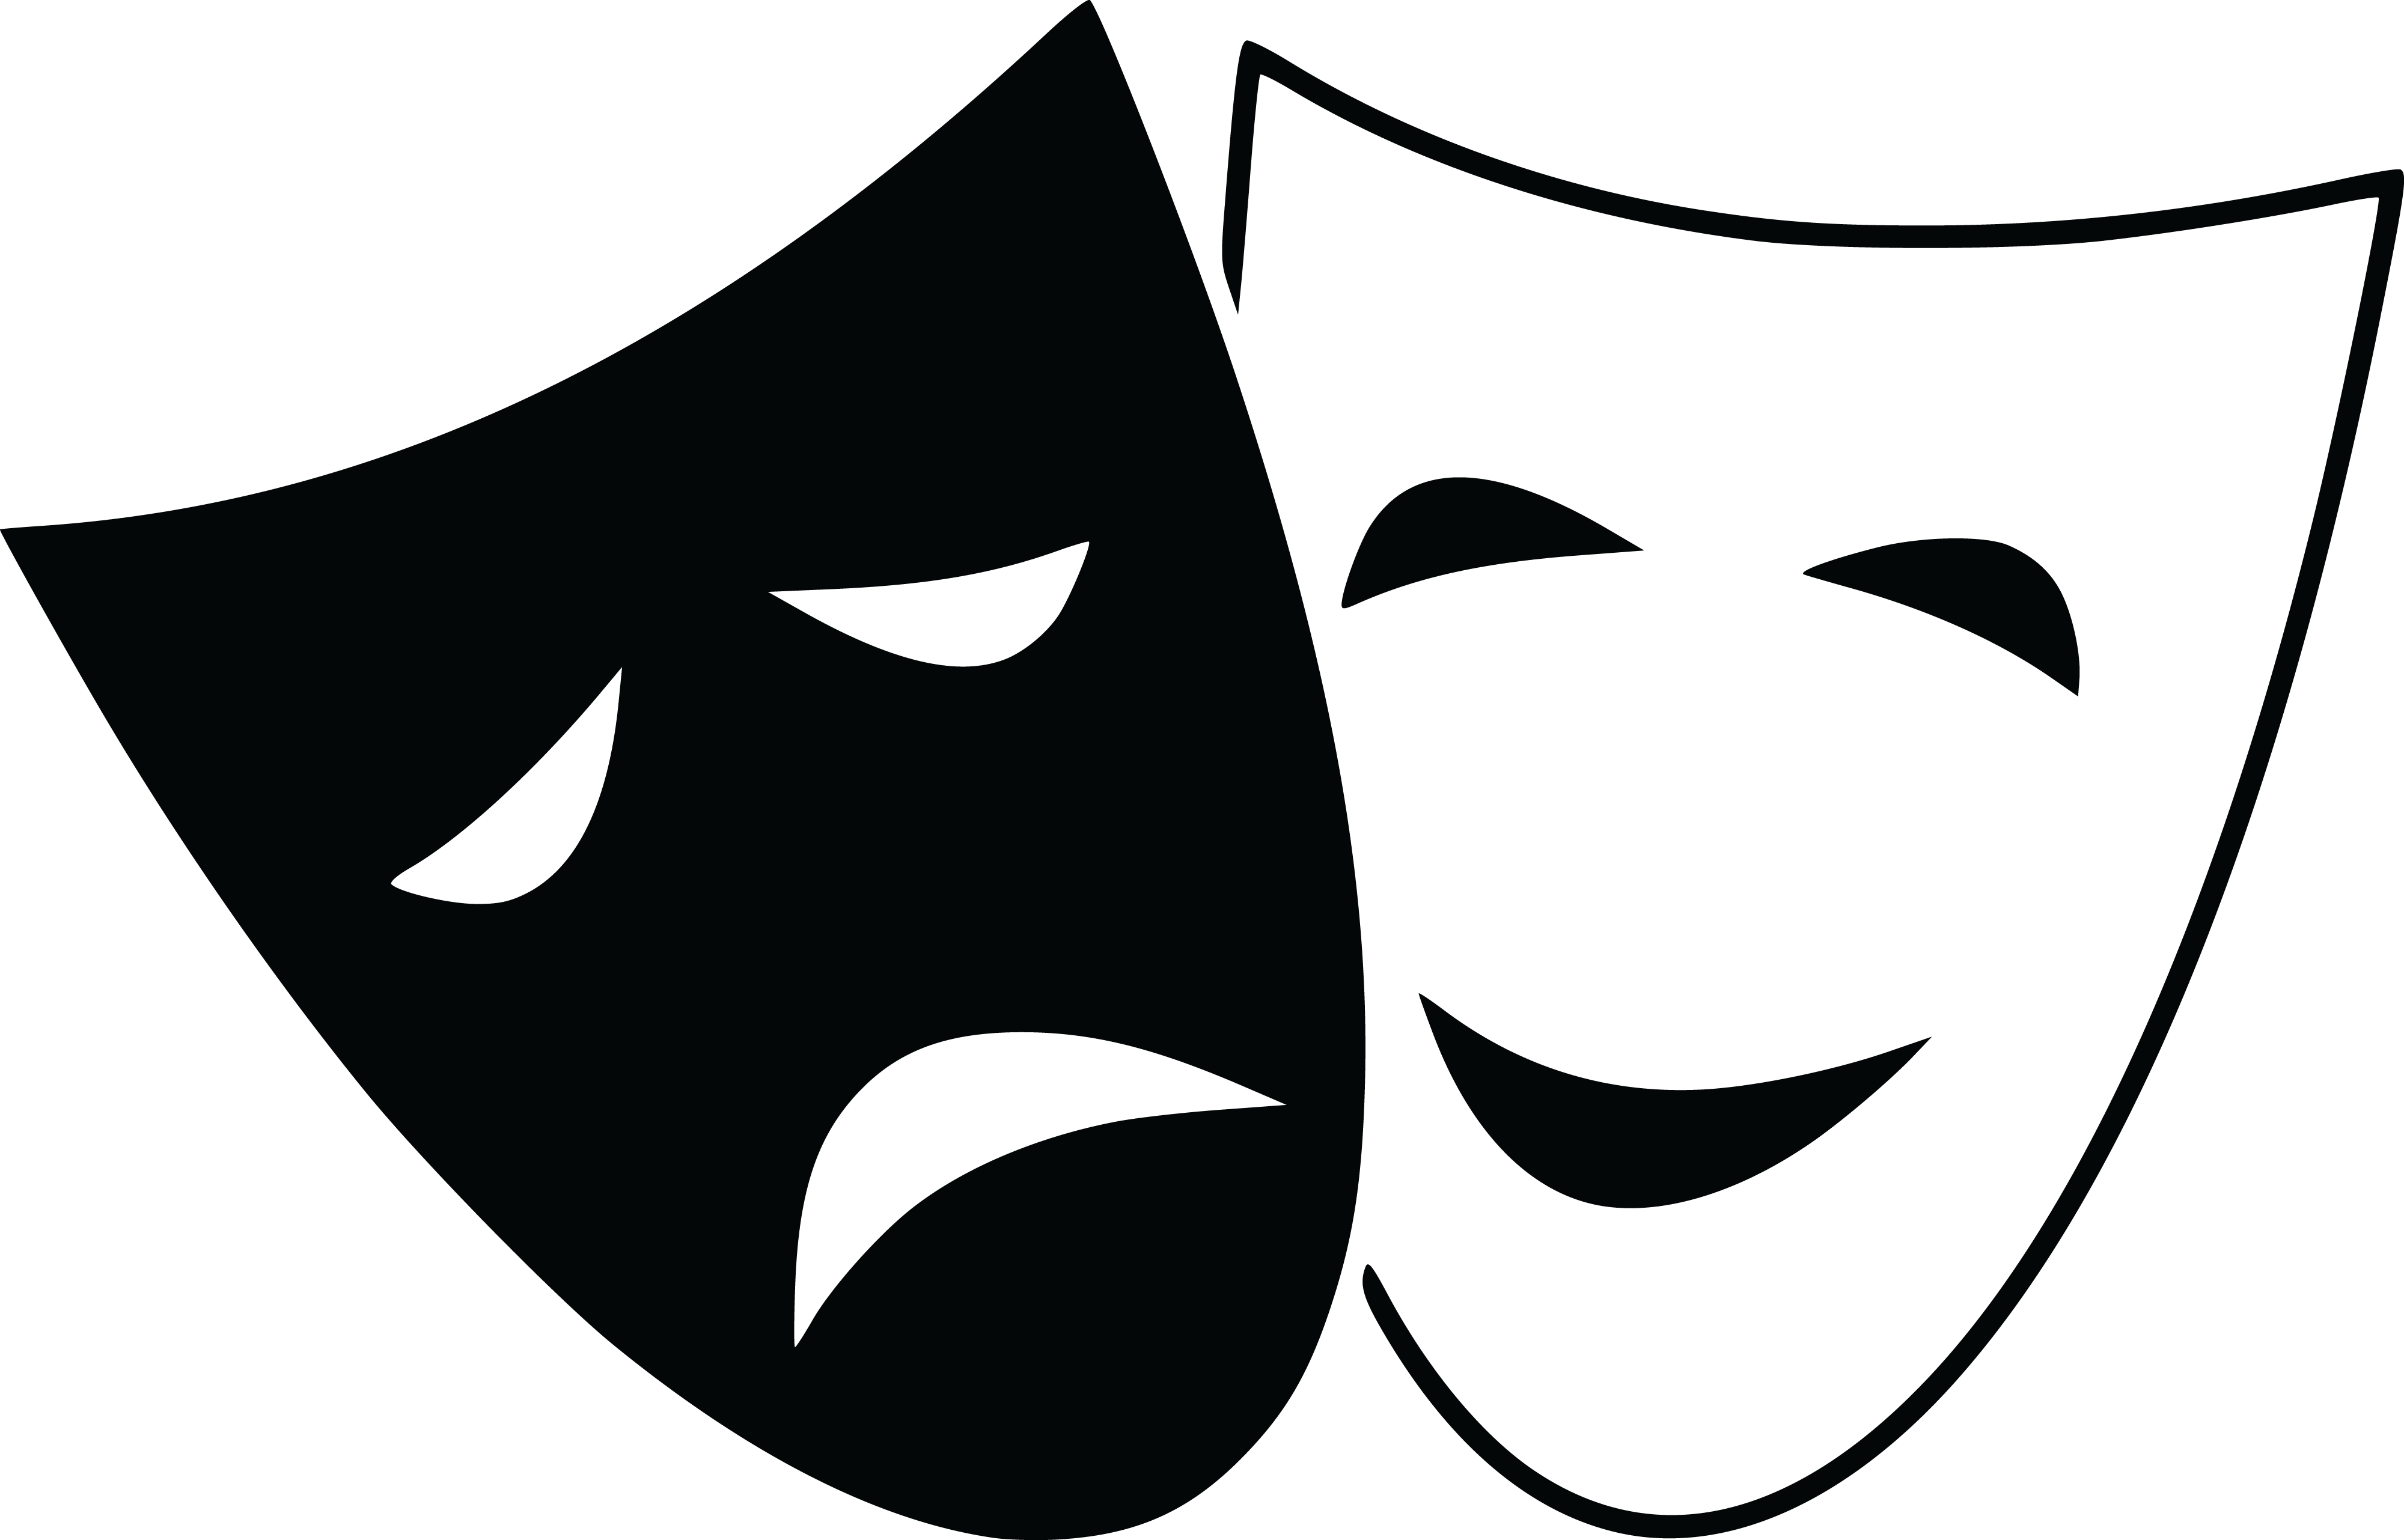 Theater mask png. Free clipart of